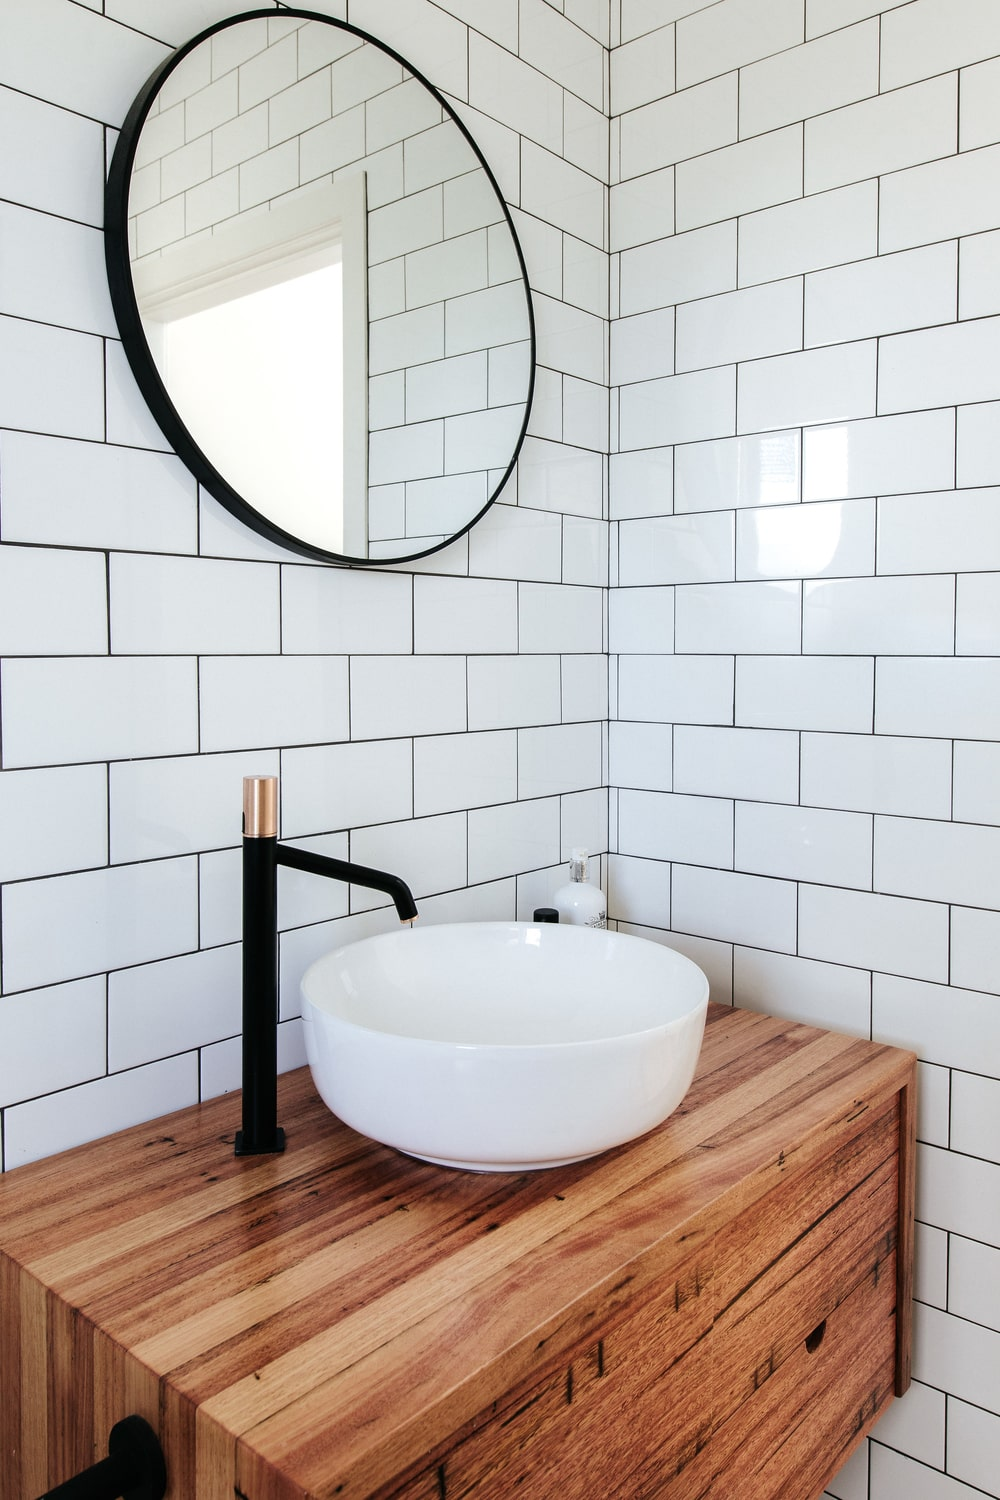 This is the lovely wooden vanity of the bathroom contrasted by its freestanding white porcelain bowl sink.This pairs well with the white subway tiles of the walls.